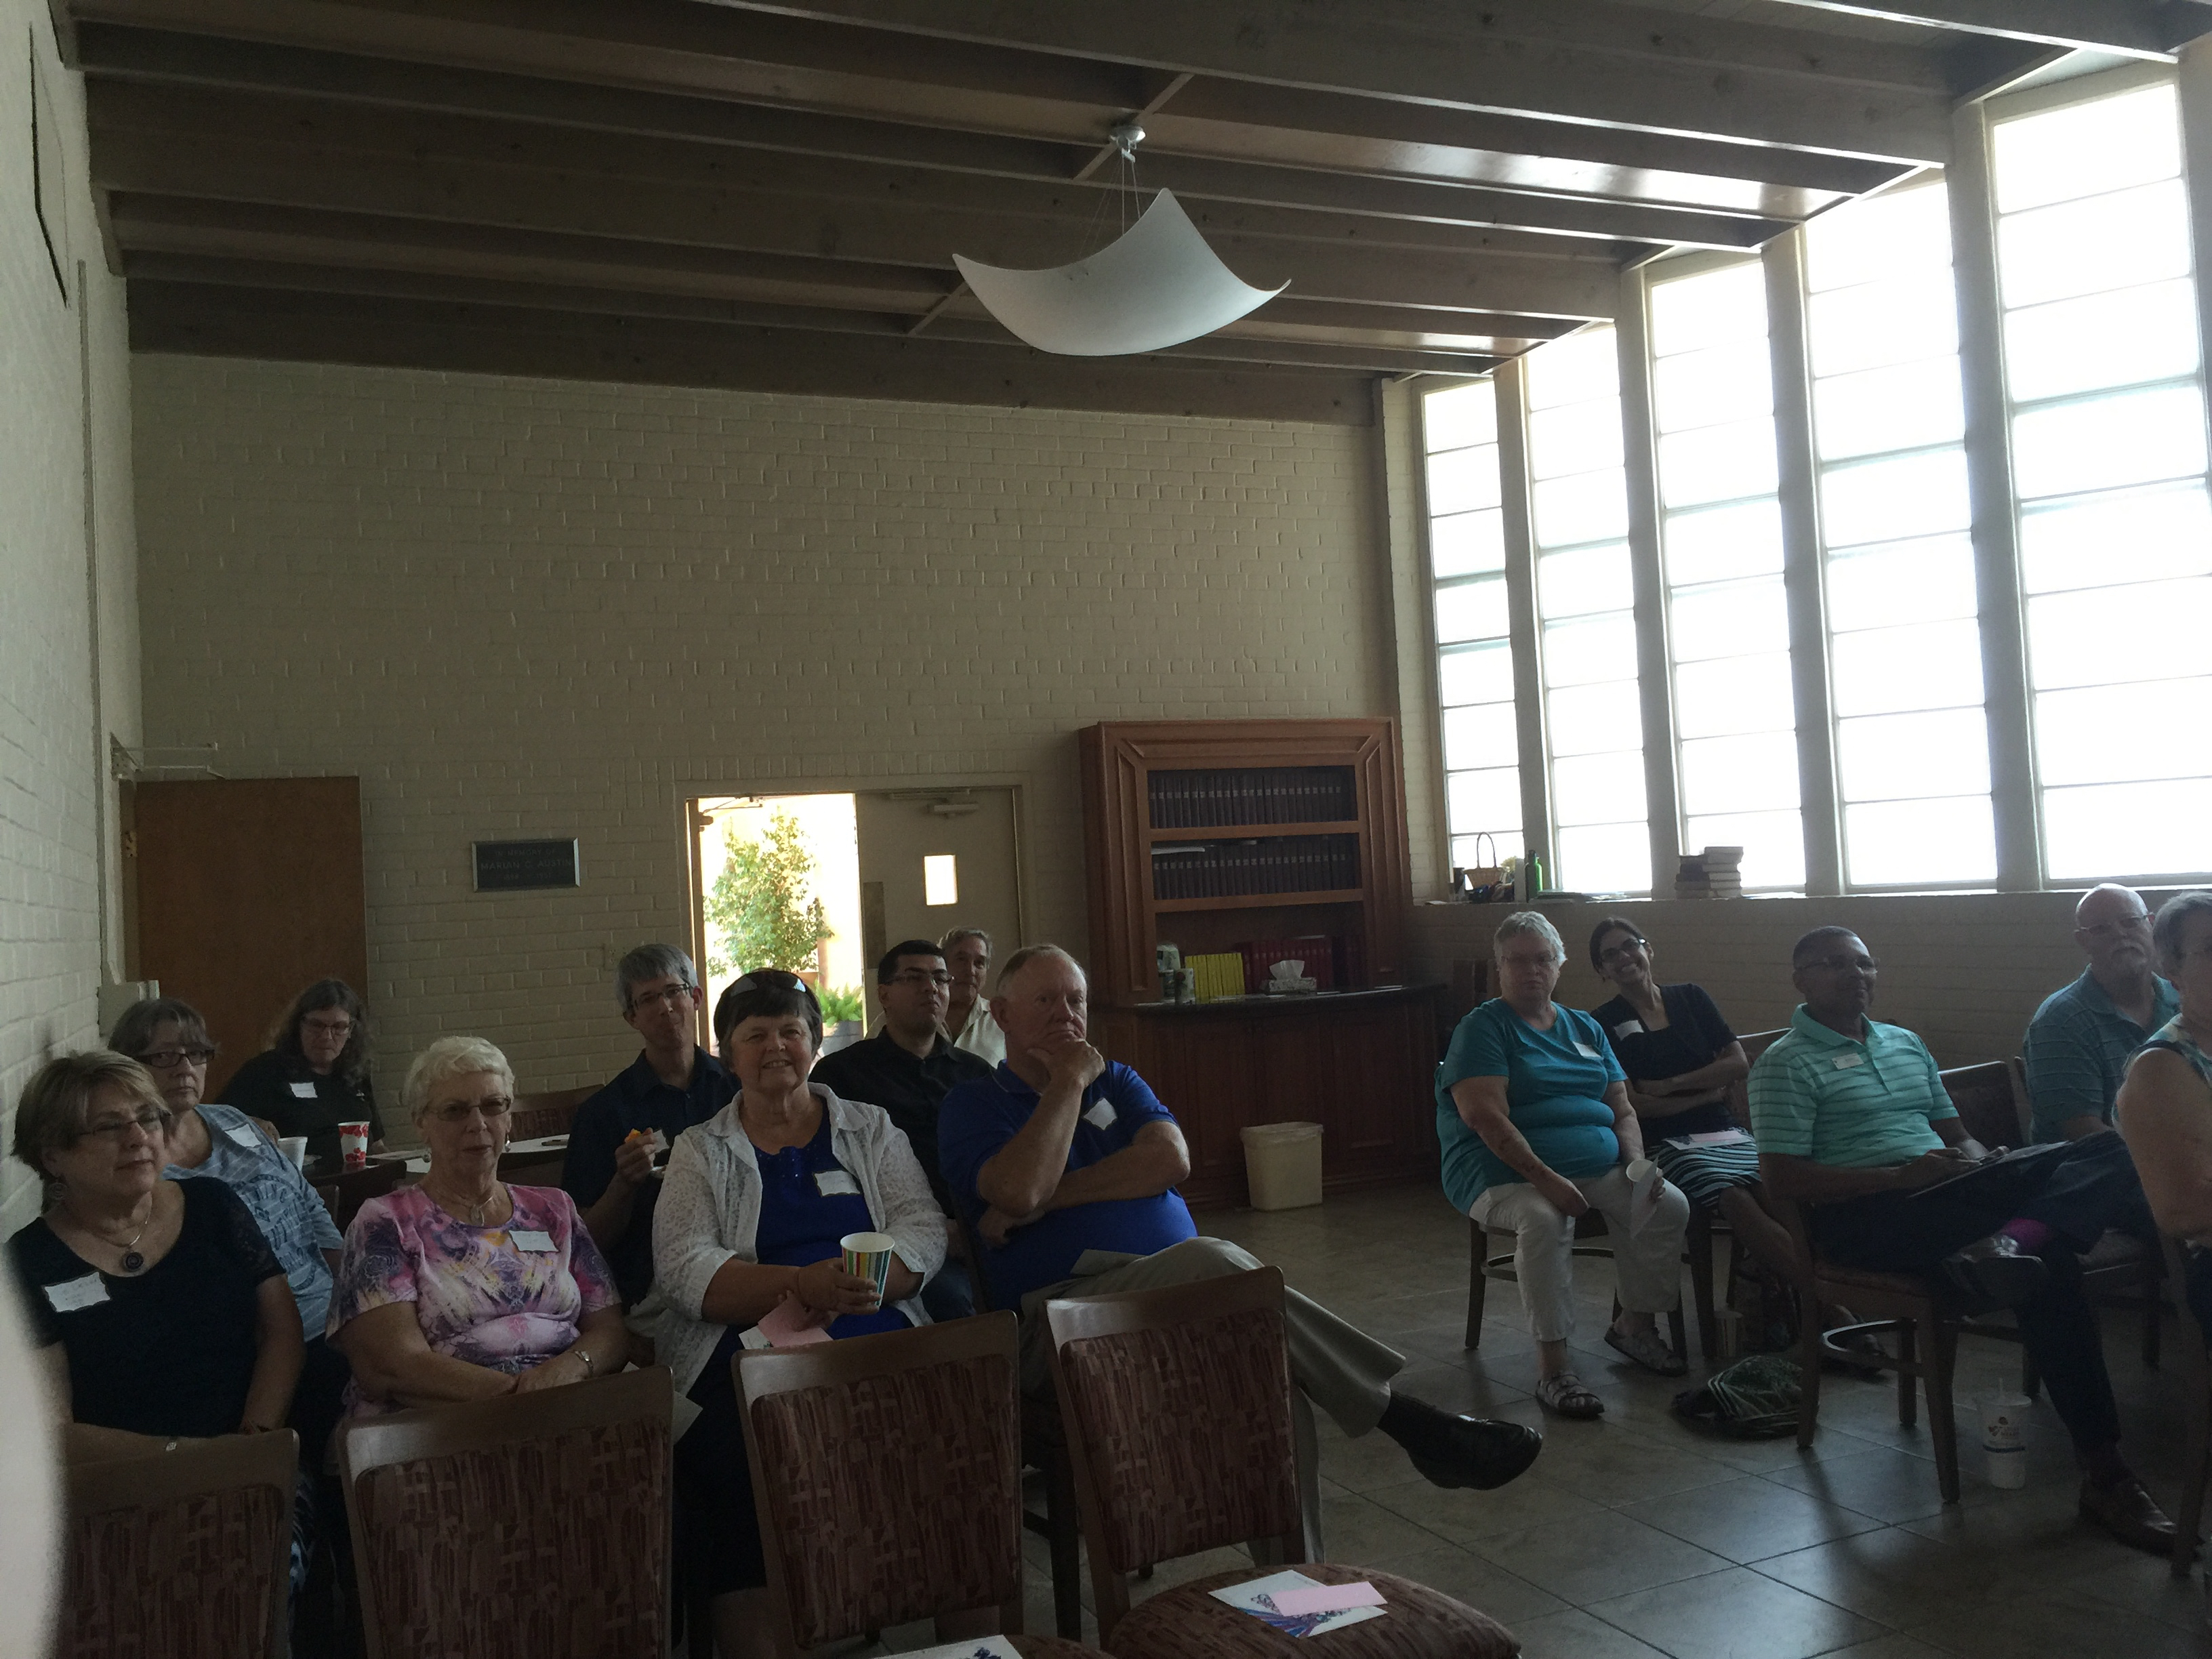 Mission First meeting group in Tucson